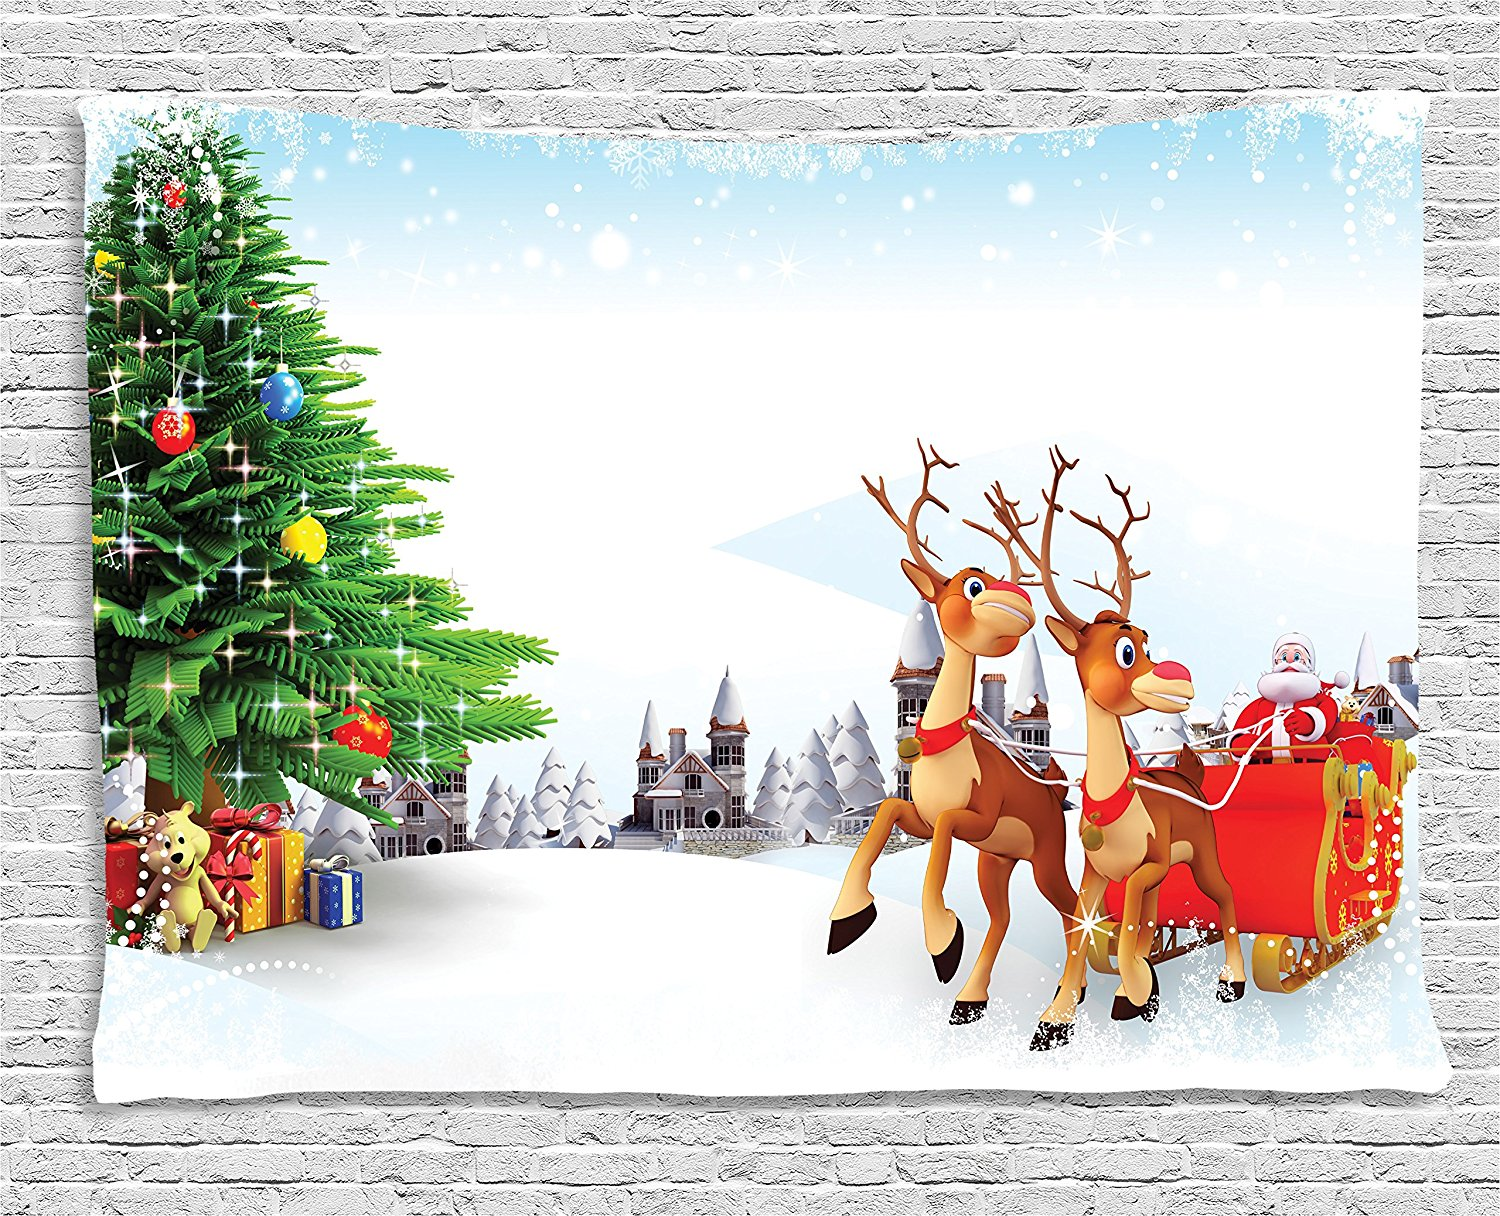 Santa Tapestry Snow Covered Christmas Village with Cartoon Santa on His Sleigh Big Tree and Boxes, Wall Hanging